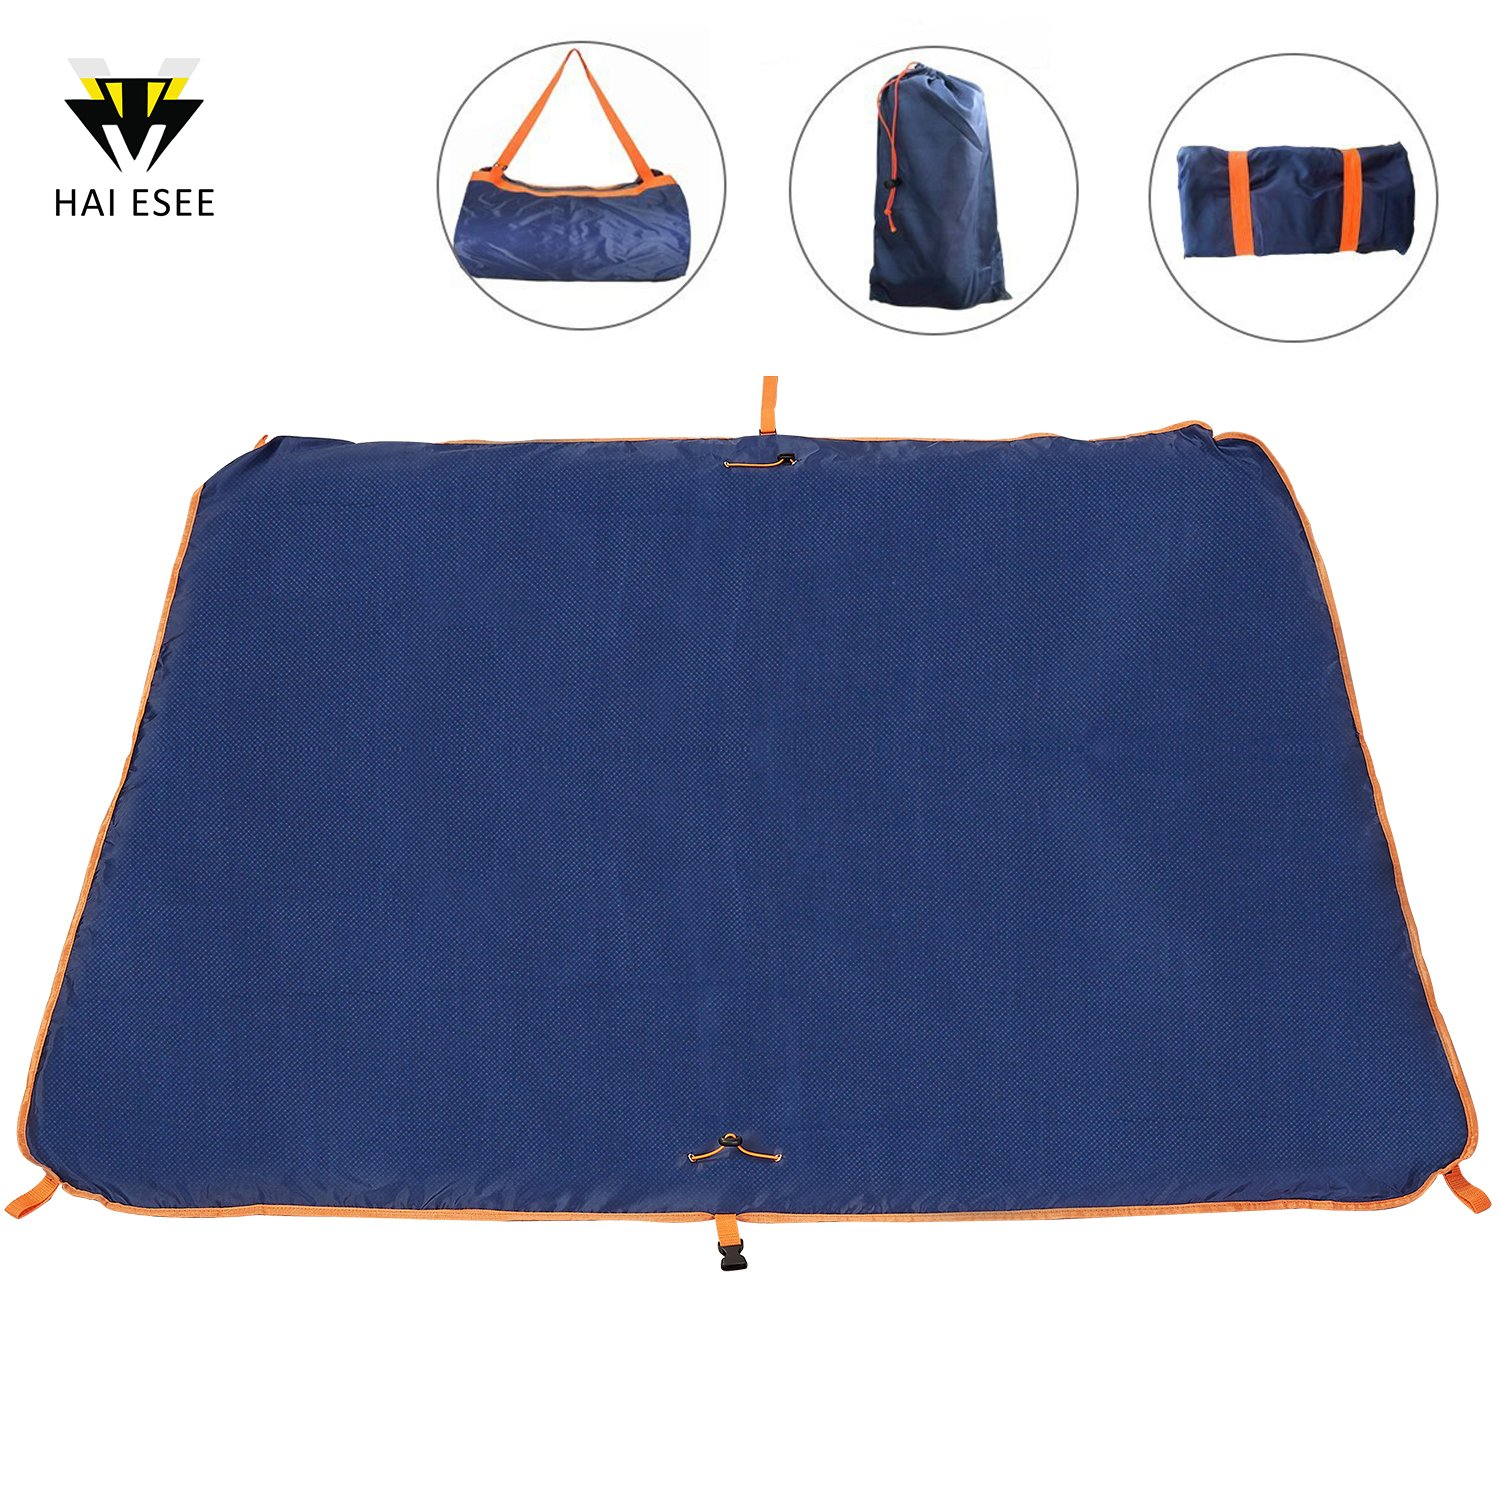 Haiesee Outdoor Waterproof Travel Bag, Mutifunctional Beach Blanket and Picnic Mat in One, Suitable for Mountaineering/Beach/Camping, Multi-Functional Folding Portable Picnic Blanket Package